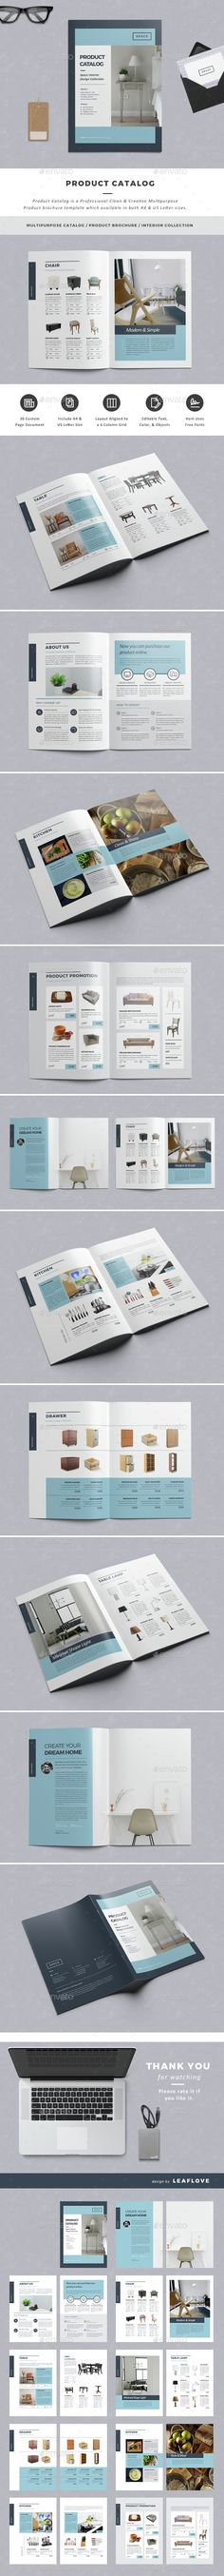 Product Catalog Template InDesign INDD. Download here: http://graphicriver.net/item/product-catalog/15253537?ref=ksioks                                                                                                                                                                                 More